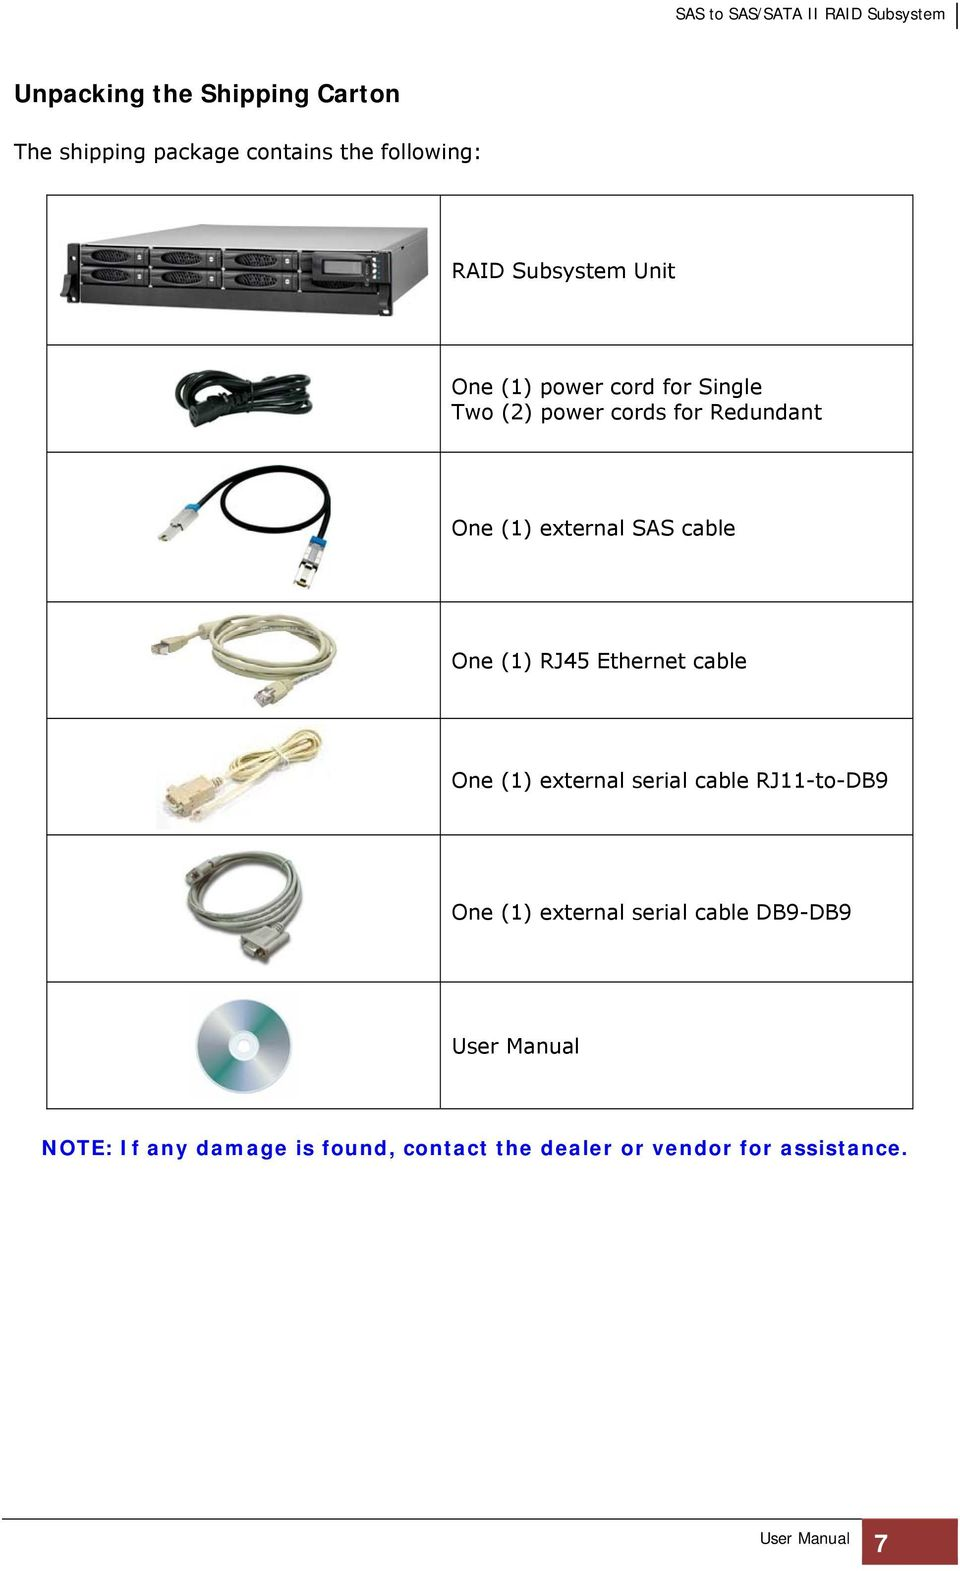 cable One (1) RJ45 Ethernet cable One (1) external serial cable RJ11-to-DB9 One (1) external